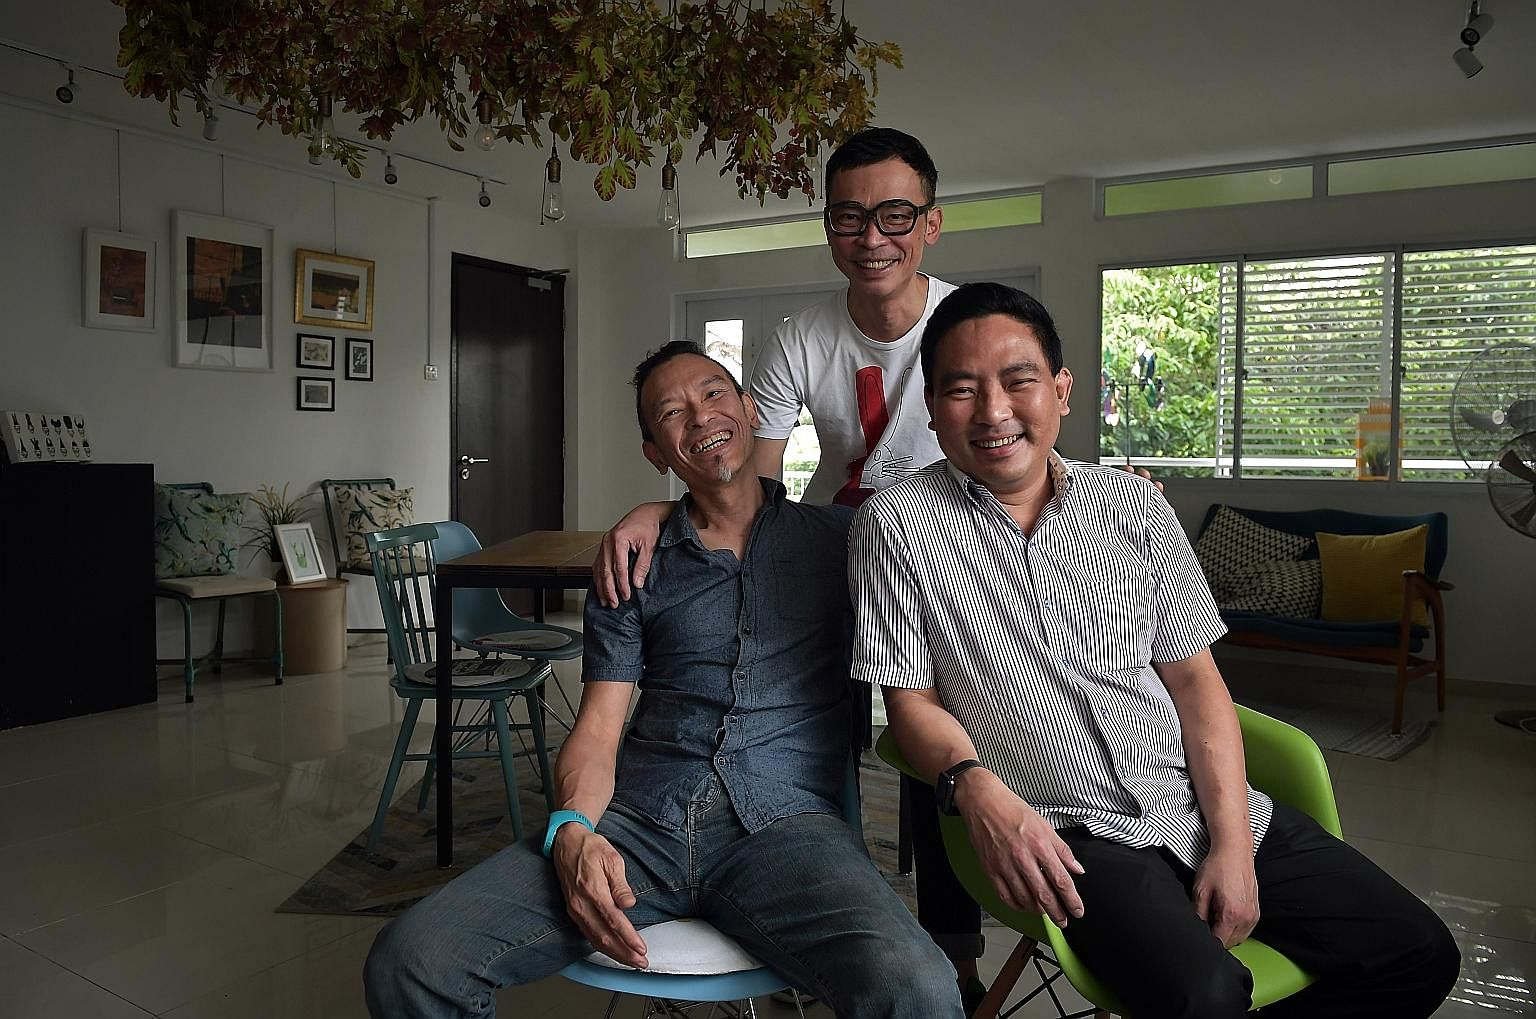 Musicians Leslie and Lionel Tan of the T'ang Quartet with their younger brother, lawyer Leroy Tan. In January last year, Leslie donated his left kidney to Leroy, who was diagnosed with end-stage kidney failure in 2013. Both older brothers